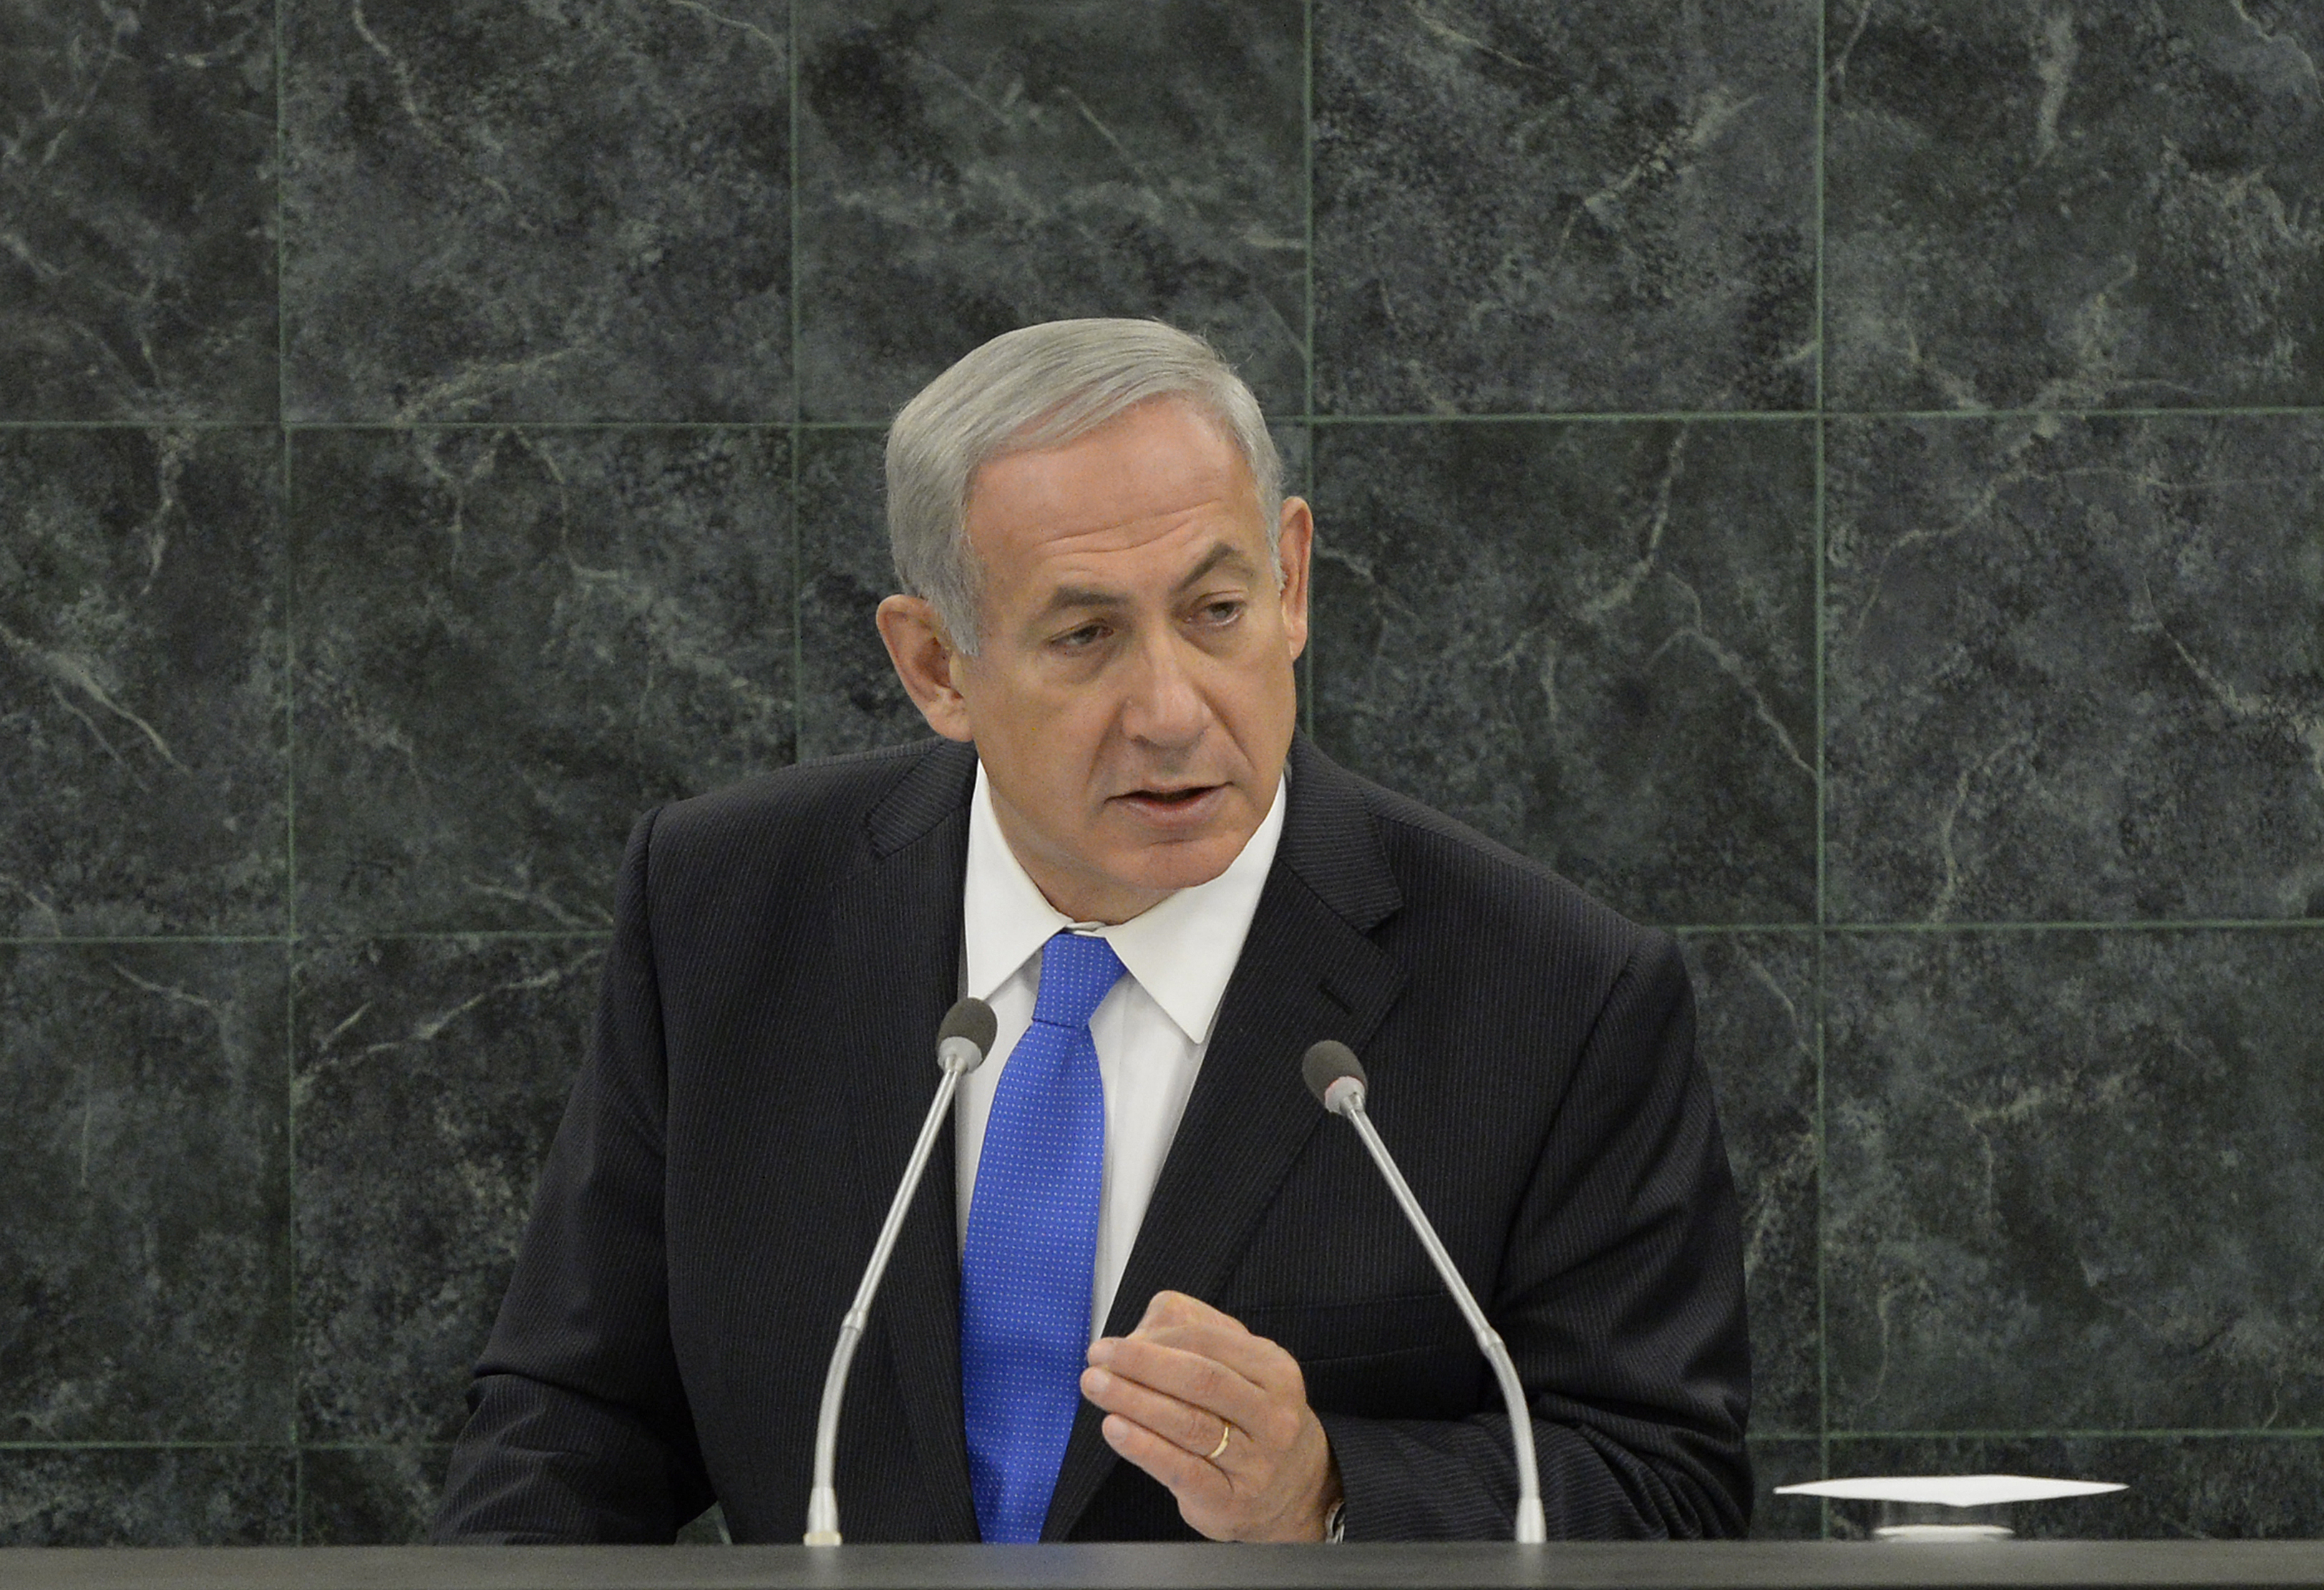 Israel's Netanyahu Says He'd 'Consider' A Meeting With New Iranian Leader